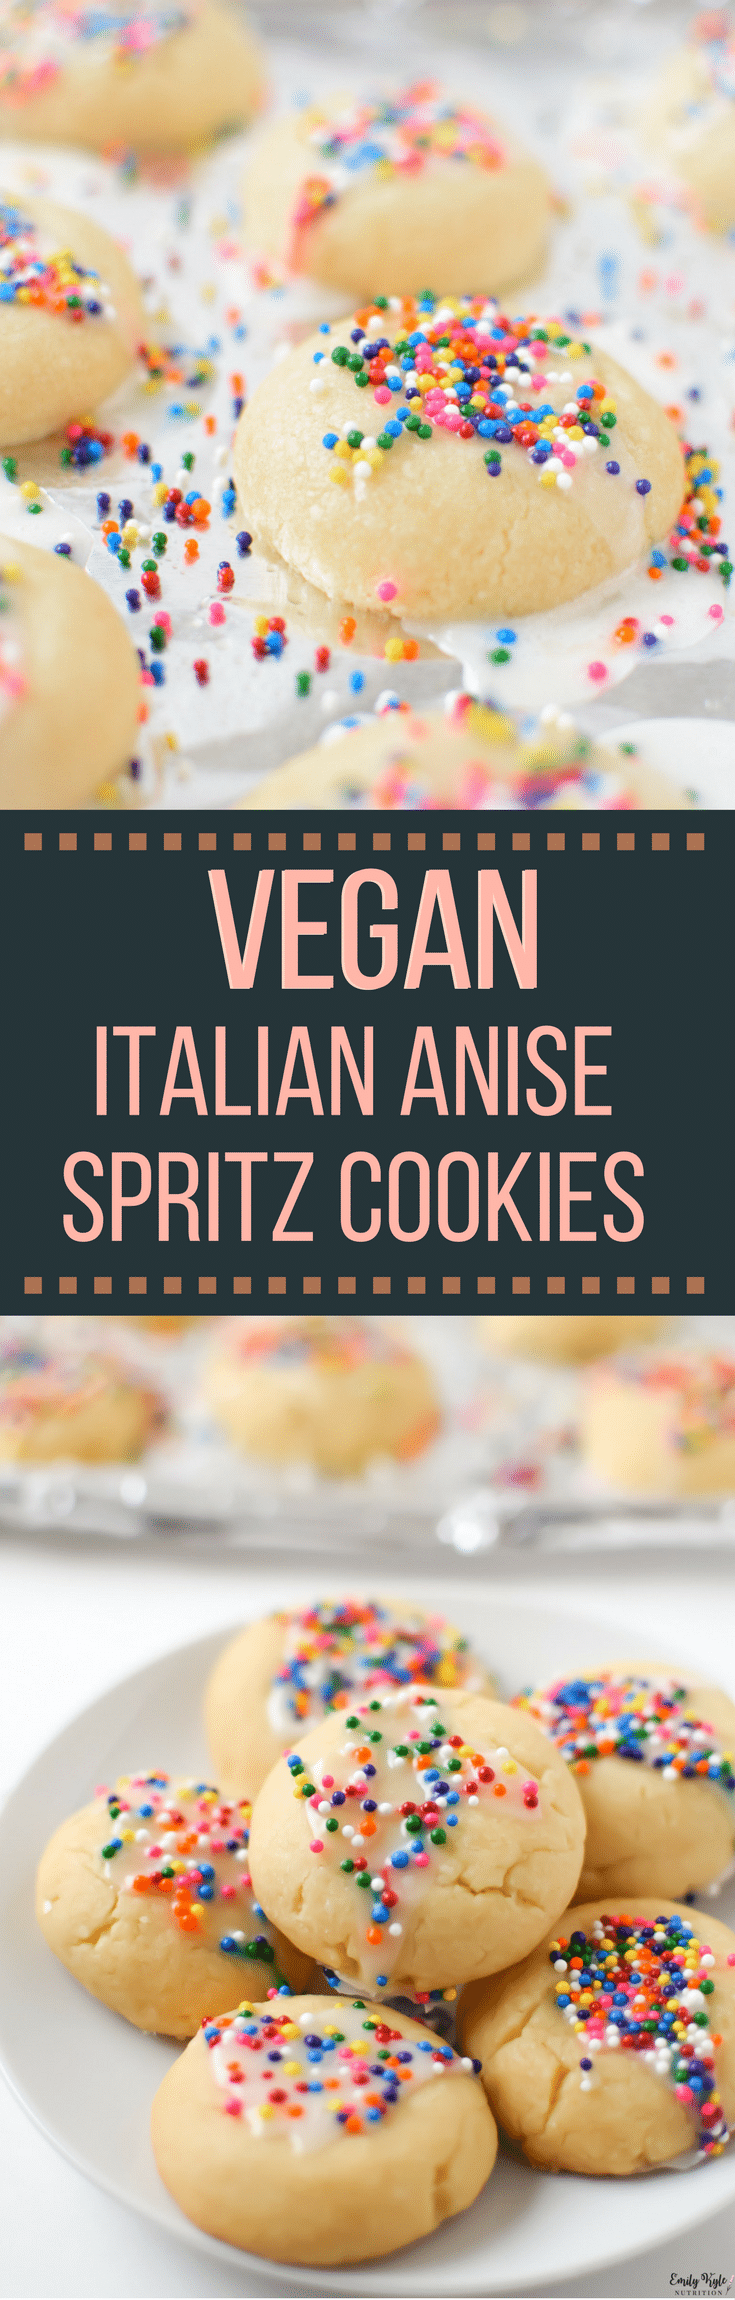 This beloved Italian Classic Anise Cookie recipe from Grandma Nancy has been updated to be plant-based, vegan version of this soft cookie that tastes just as buttery and delicious as the original.